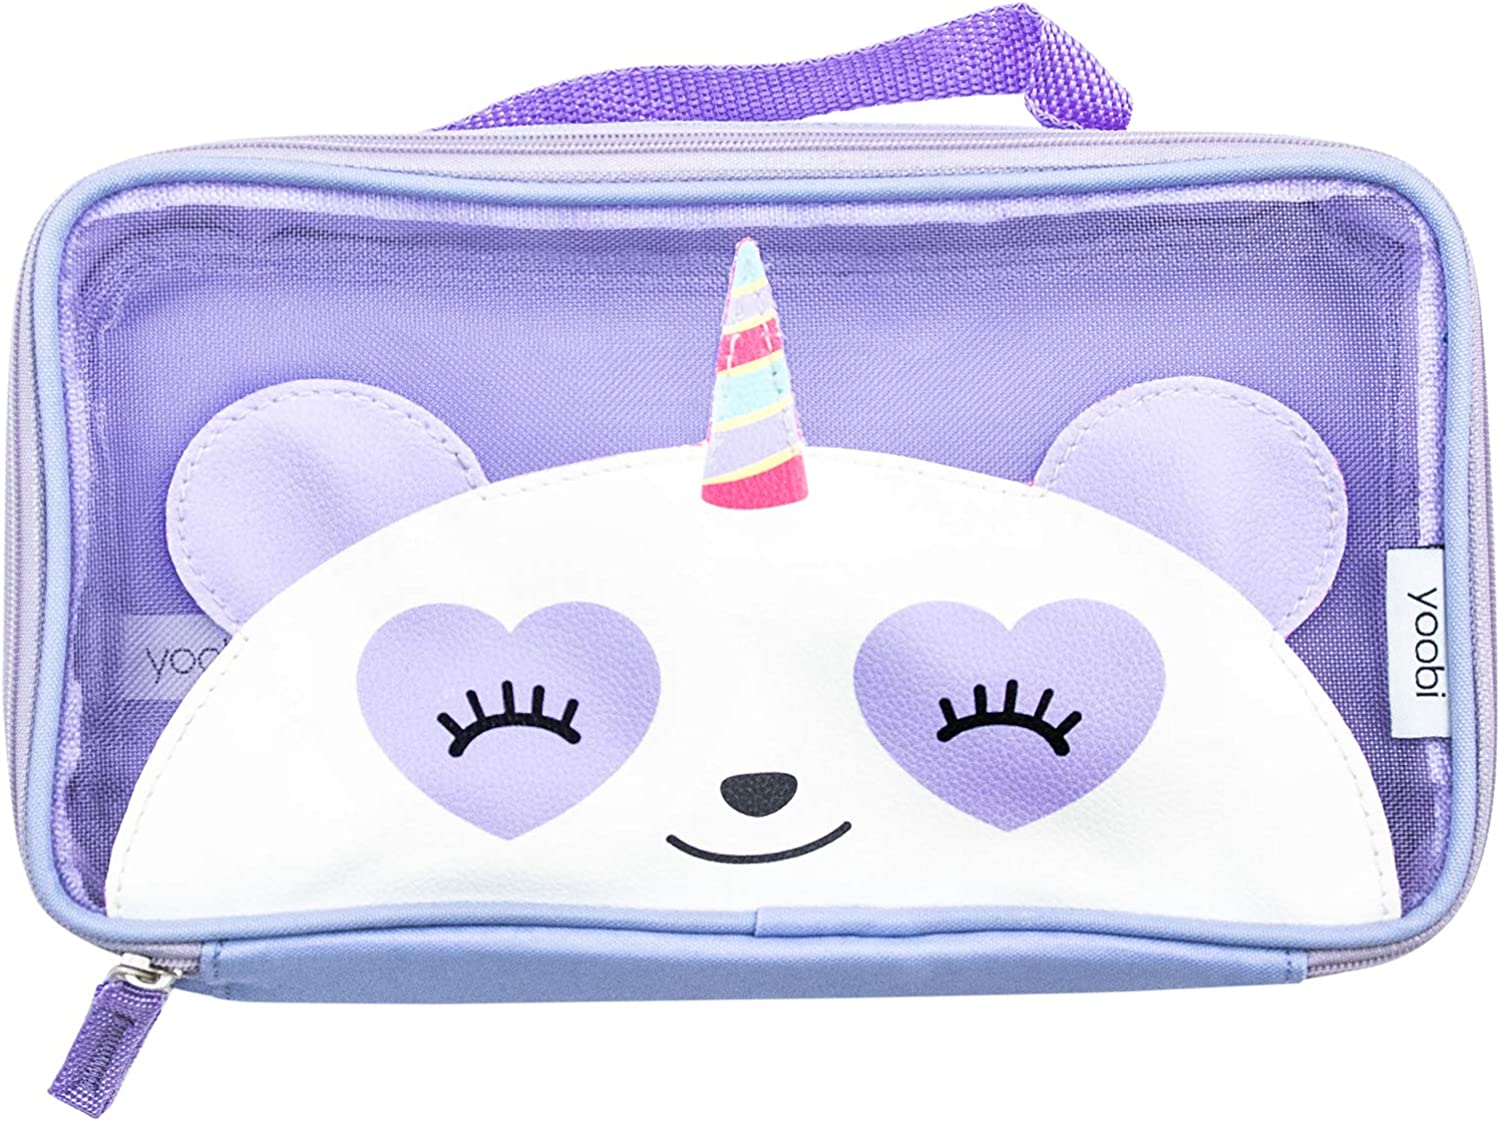 Yoobi | Pencil Case Storage Pouch for Kids | Pandacorn See Through Purple Mesh with Zipper Closure and Carry Handle | PVC Free